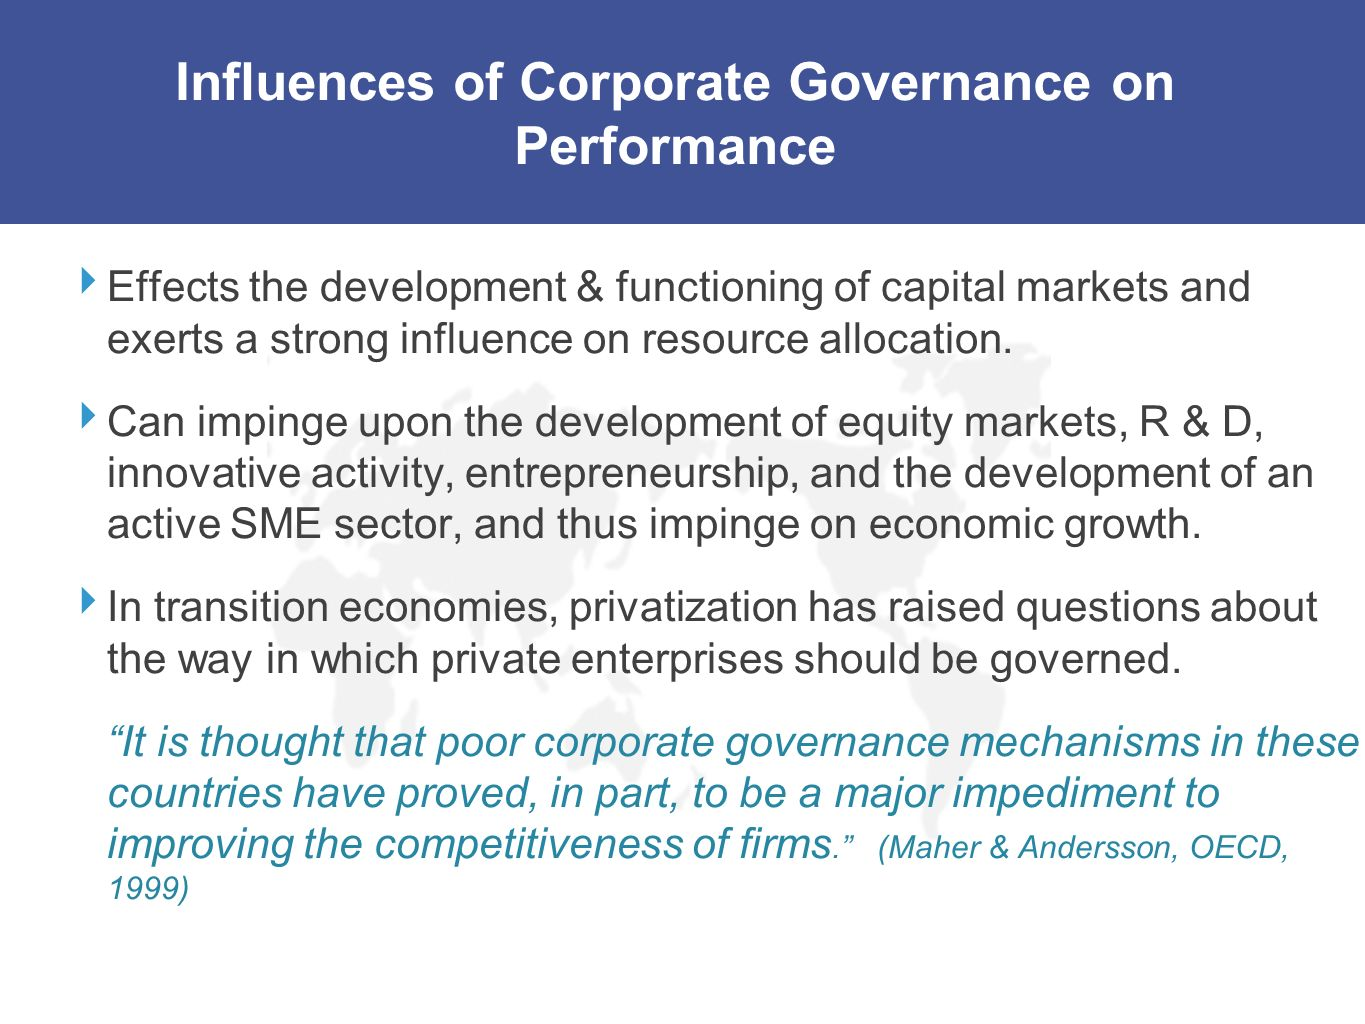 Influences of Corporate Governance on Performance